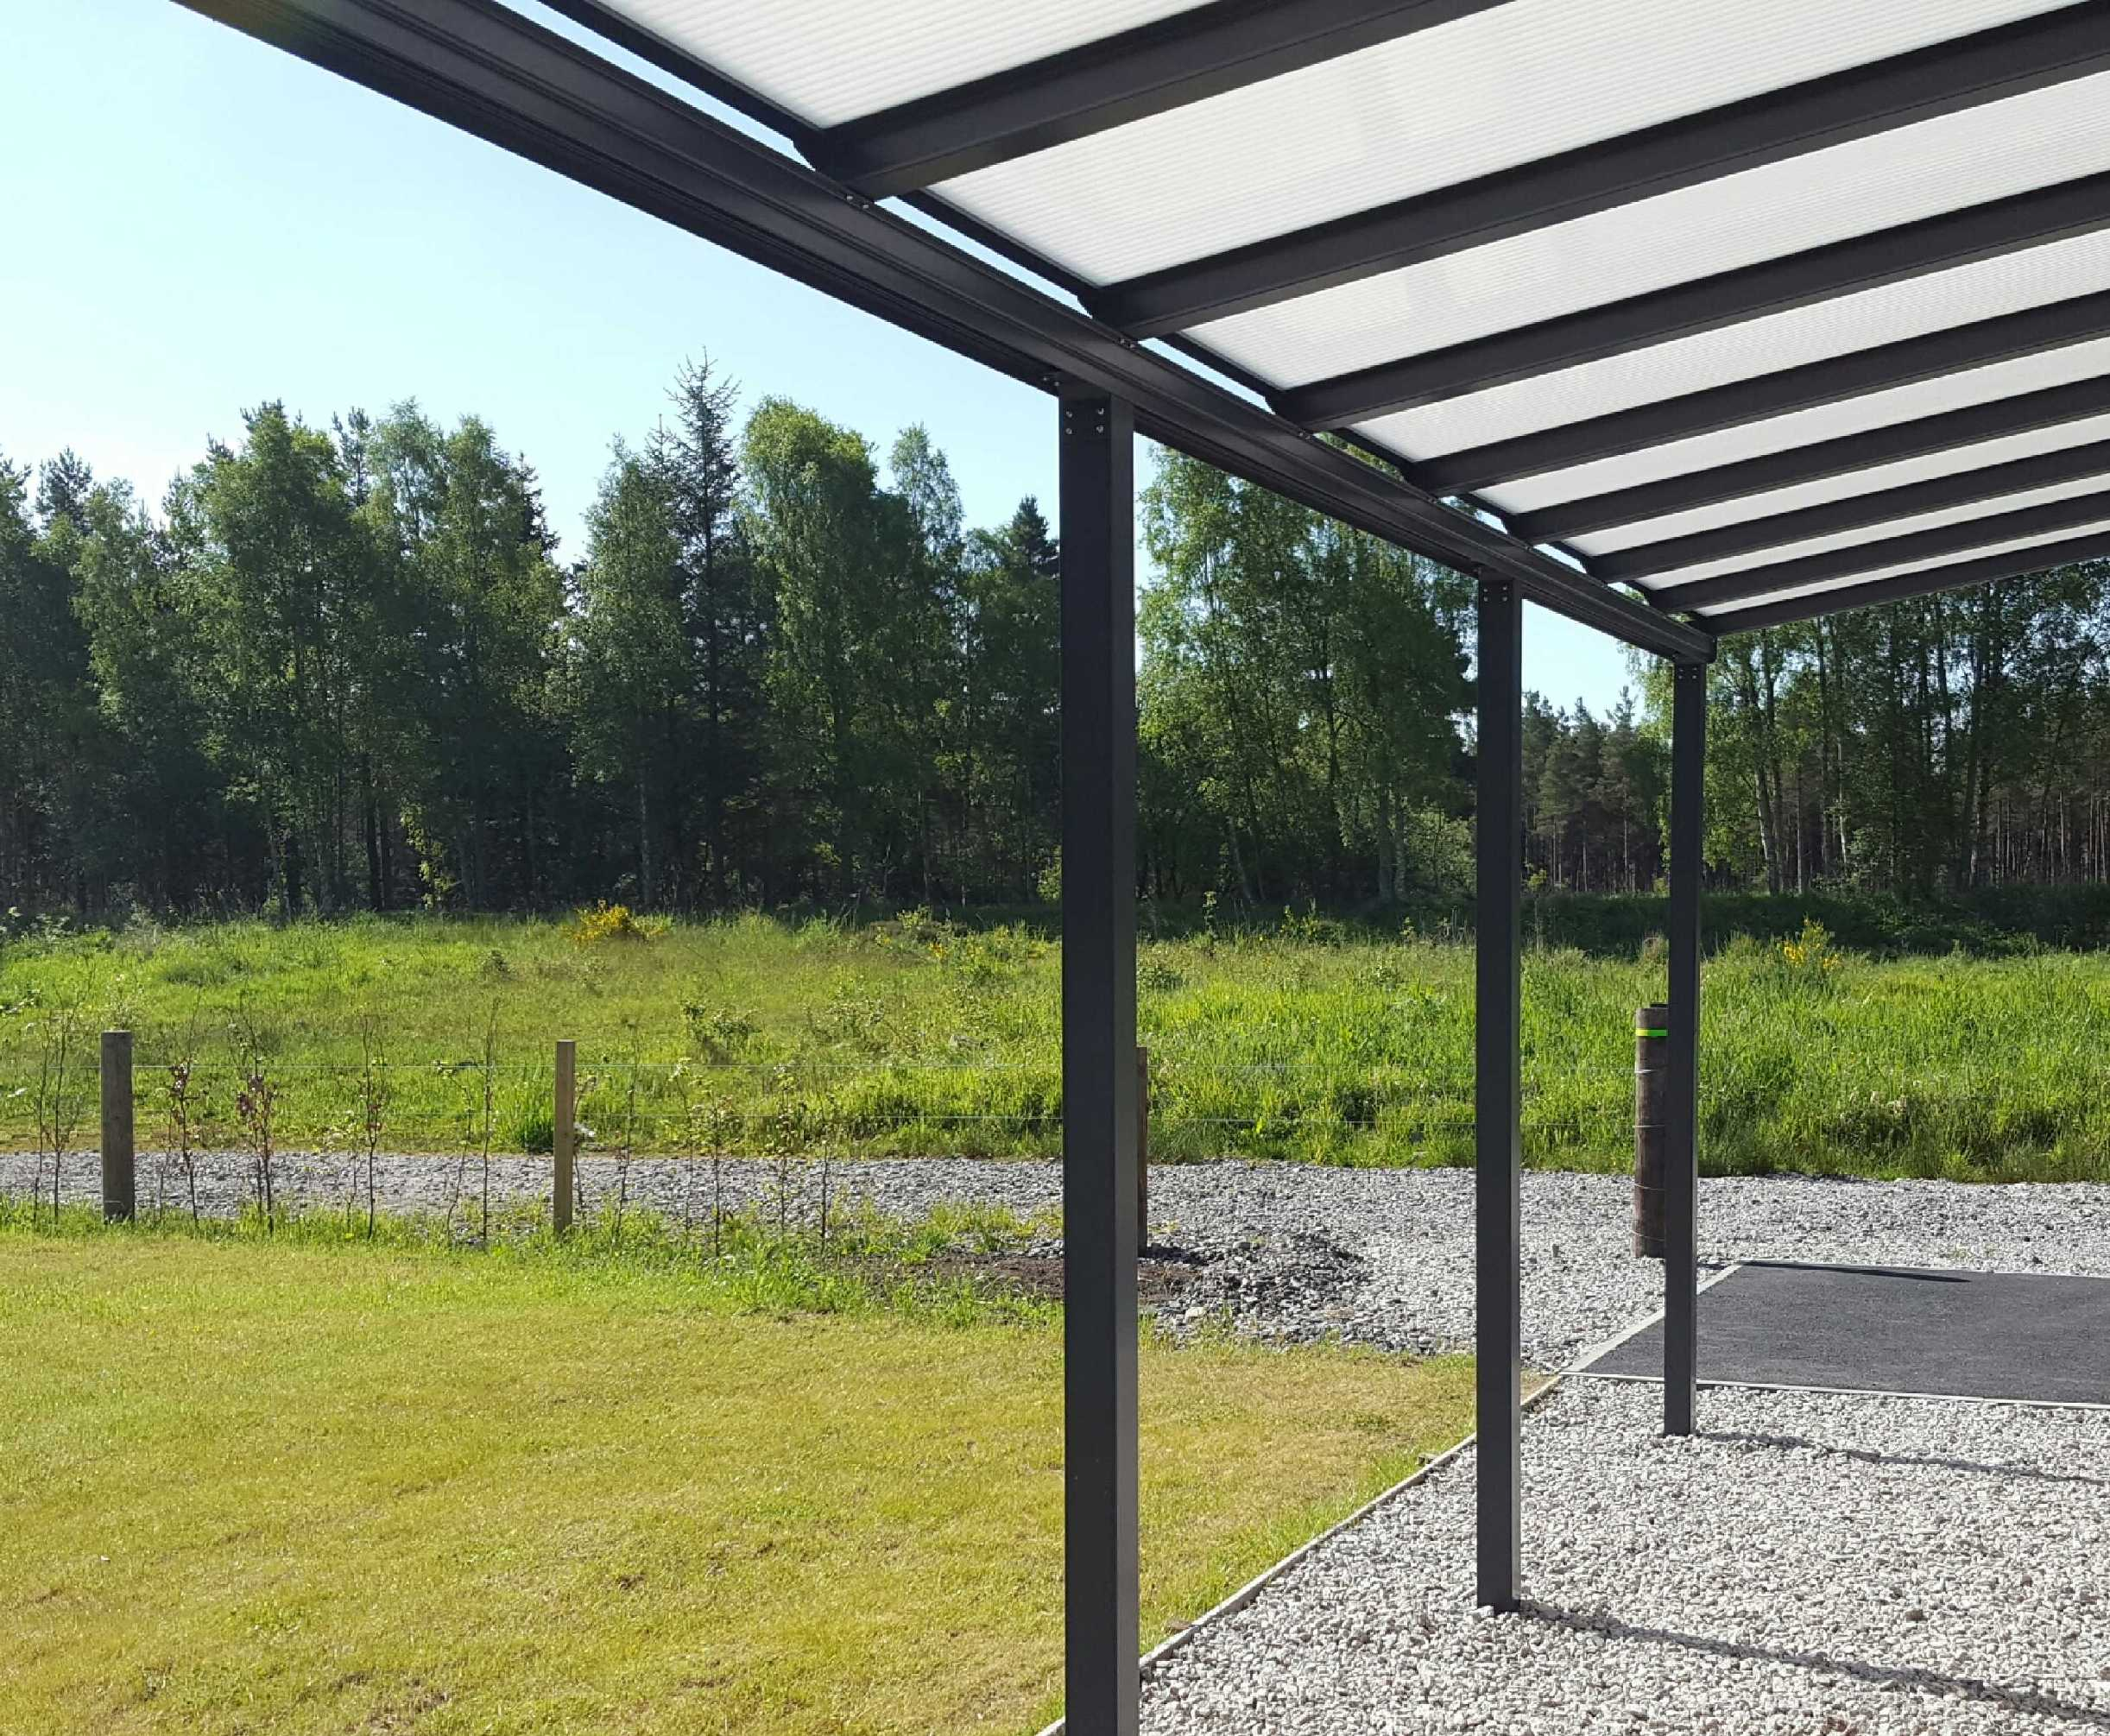 Omega Smart Lean-To Canopy, Anthracite Grey, 16mm Polycarbonate Glazing - 10.6m (W) x 3.0m (P), (5) Supporting Posts